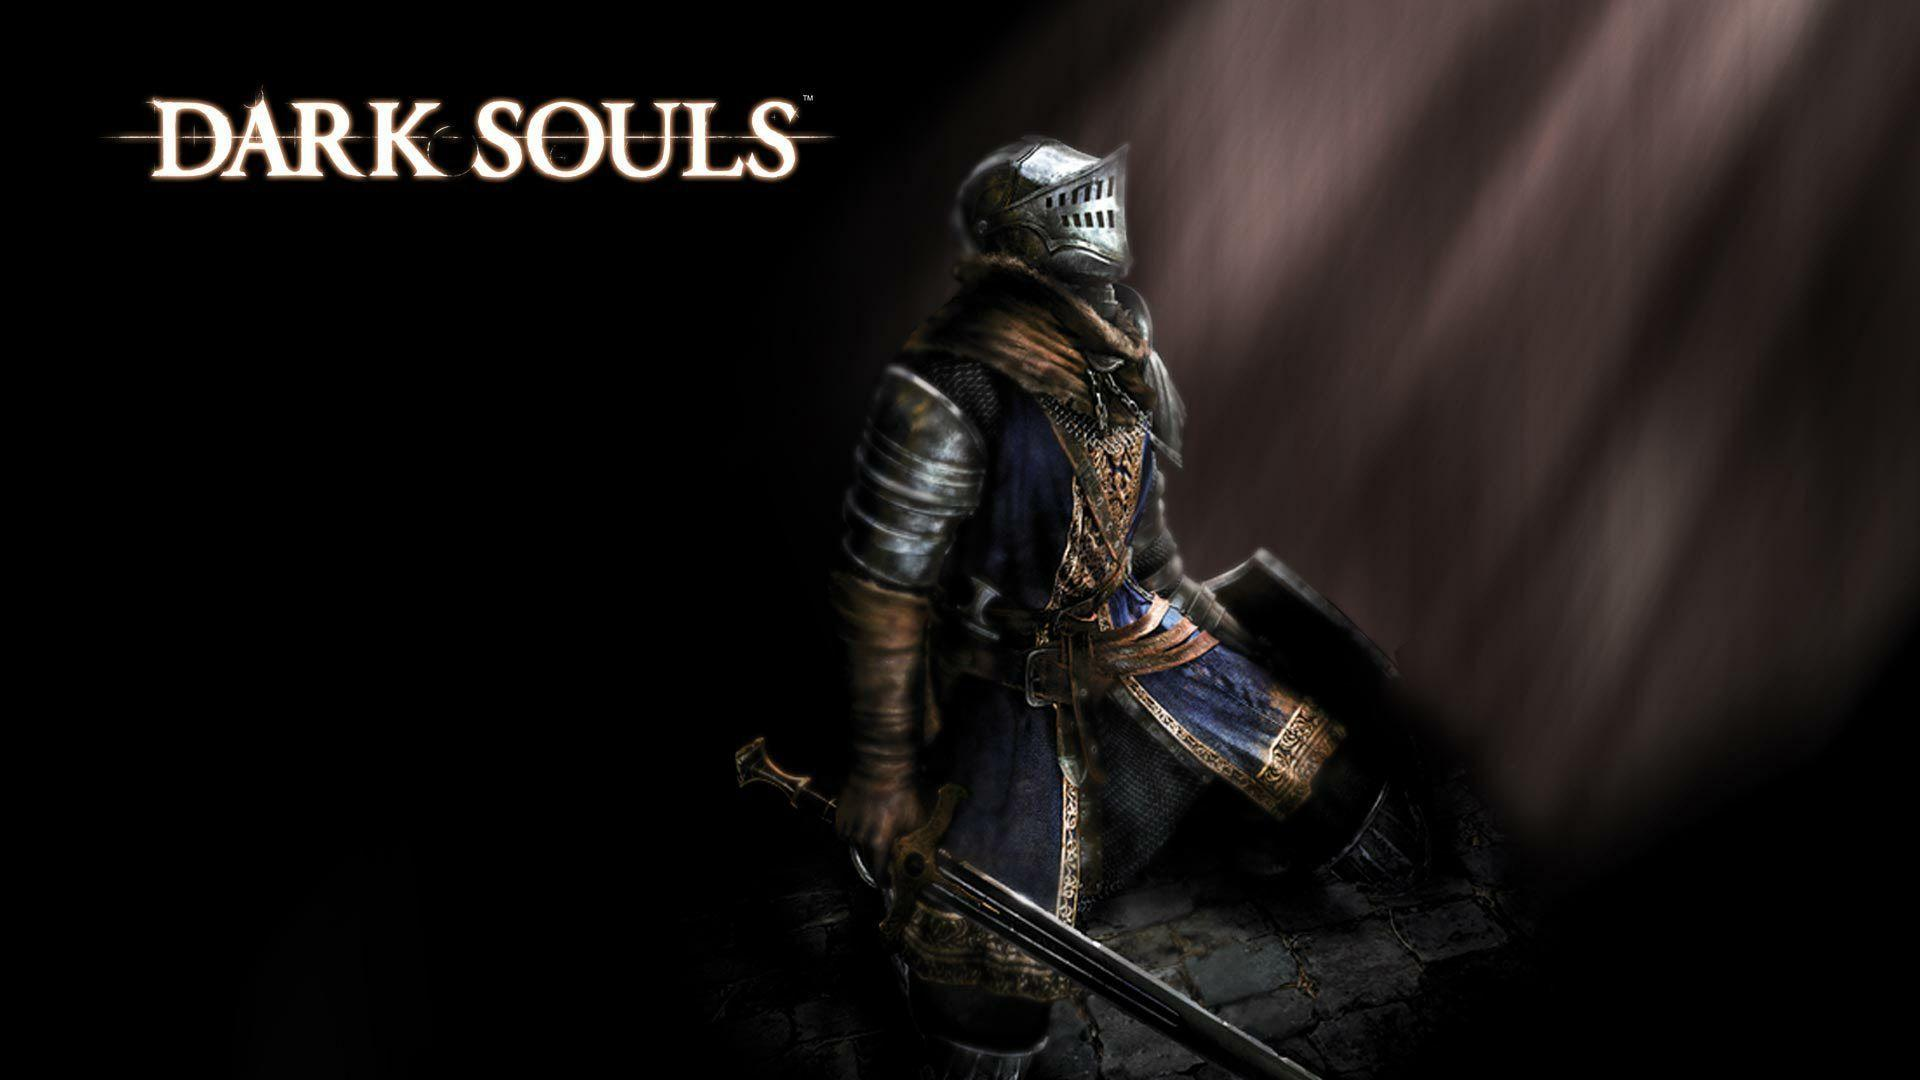 dark souls 3 wallpaper, dark souls desktop wallpaper